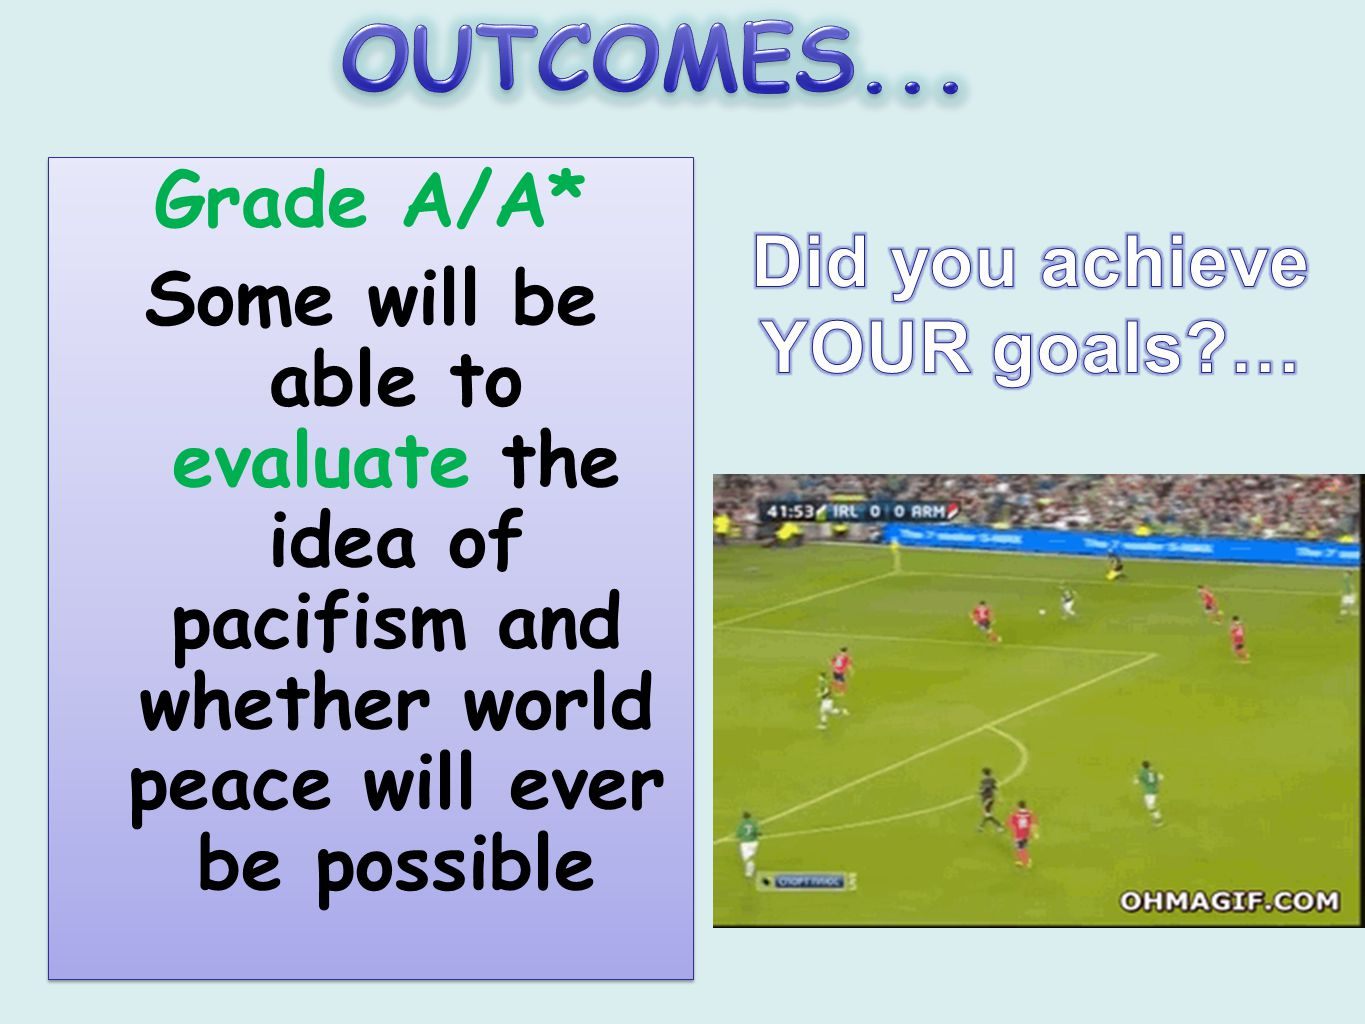 OUTCOMES... Grade A/A* Some will be able to evaluate the idea of pacifism and whether world peace will ever be possible.